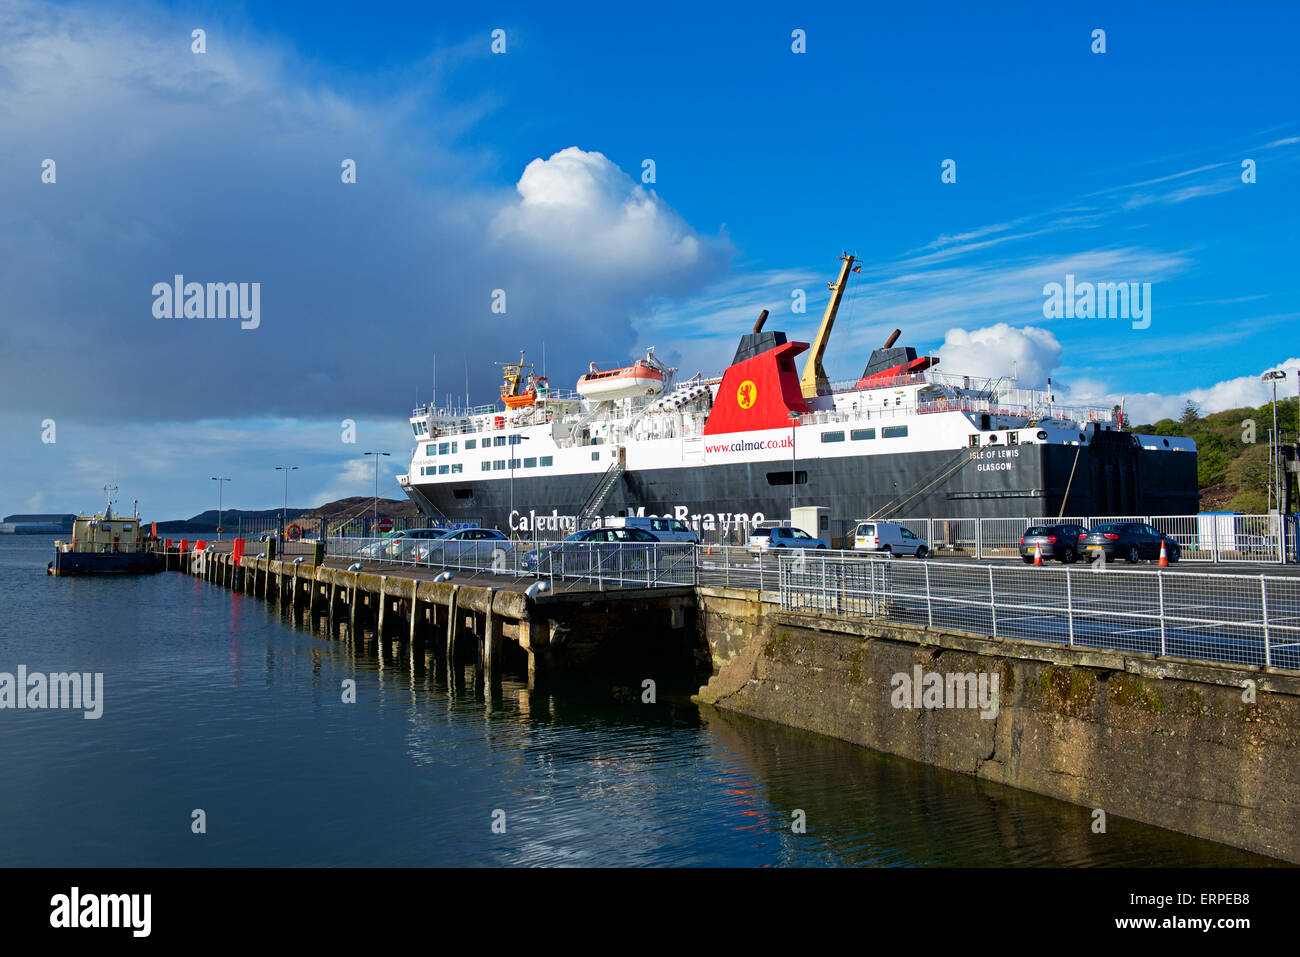 Caledonian MacBrayne Ferry at Storoway, Isle of Lewis, Outer Hebrides, Scotland UK - Stock Image